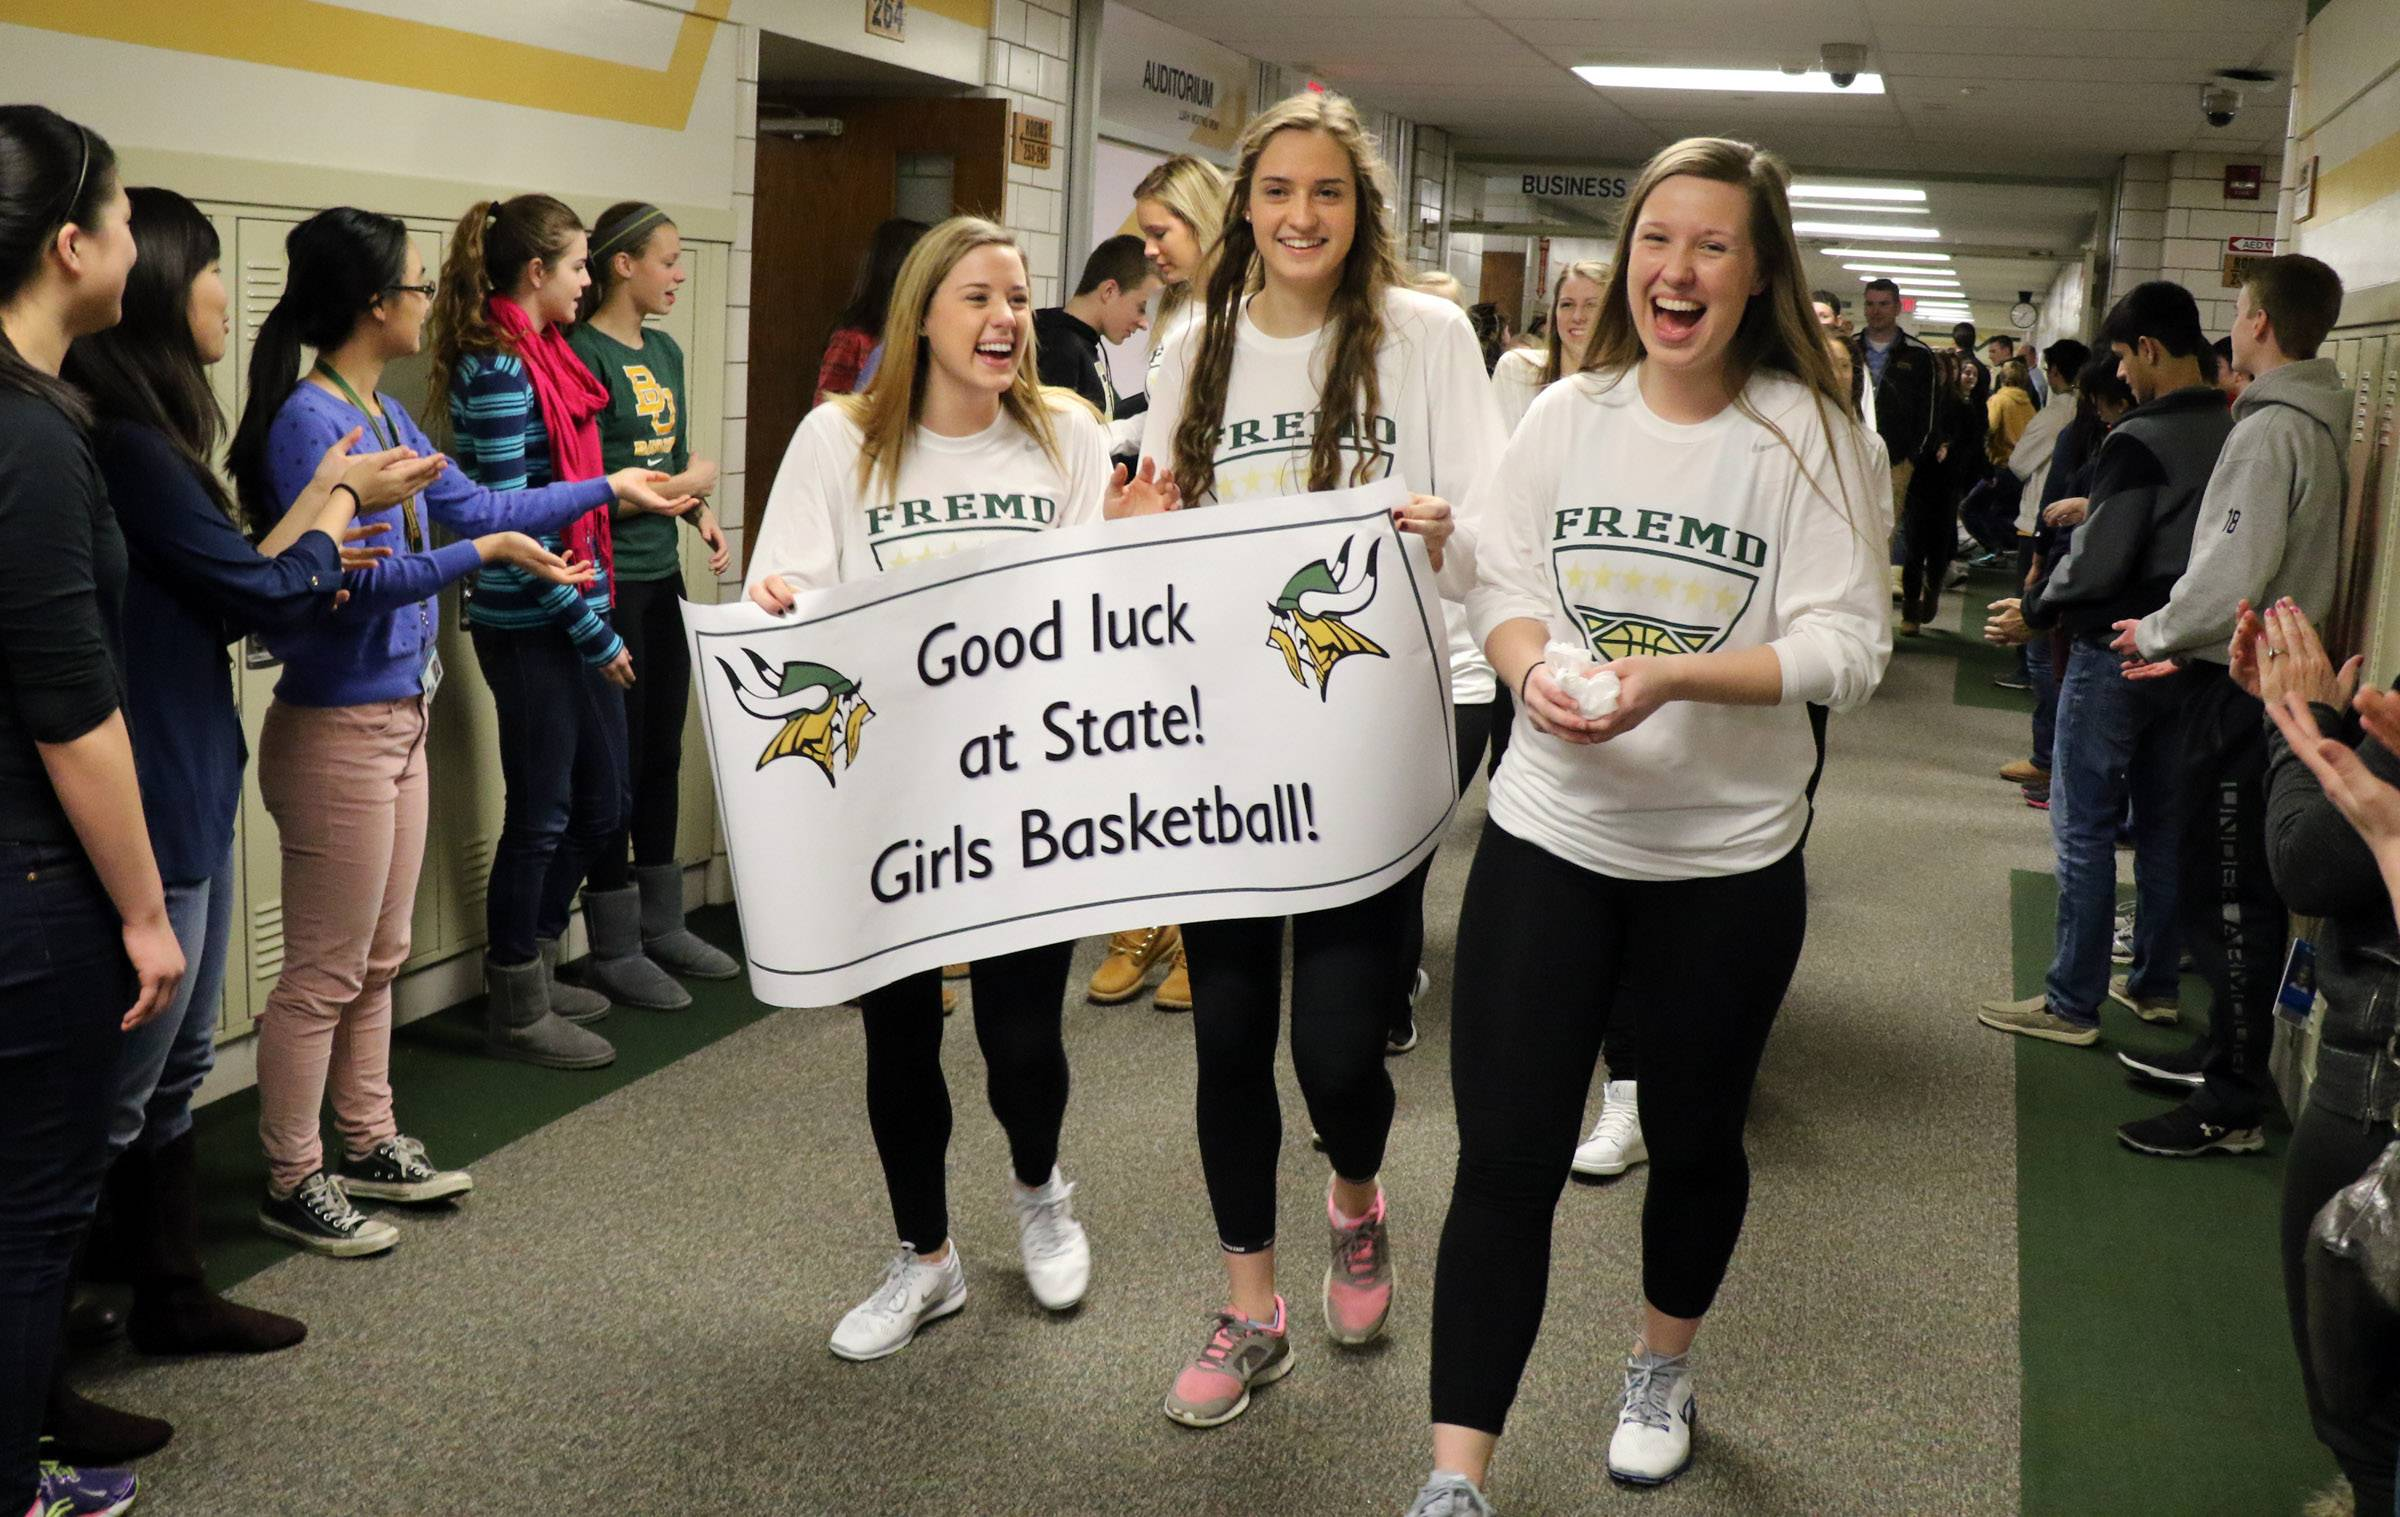 Fremd High School girls' basketball team members, including co-captains Emily Bieda, left, and Haley Gorecki, carrying the sign, march through the school's hallways Wednesday as the team got a big send-off to the state tournament in Palatine. The girls depart on Thursday.